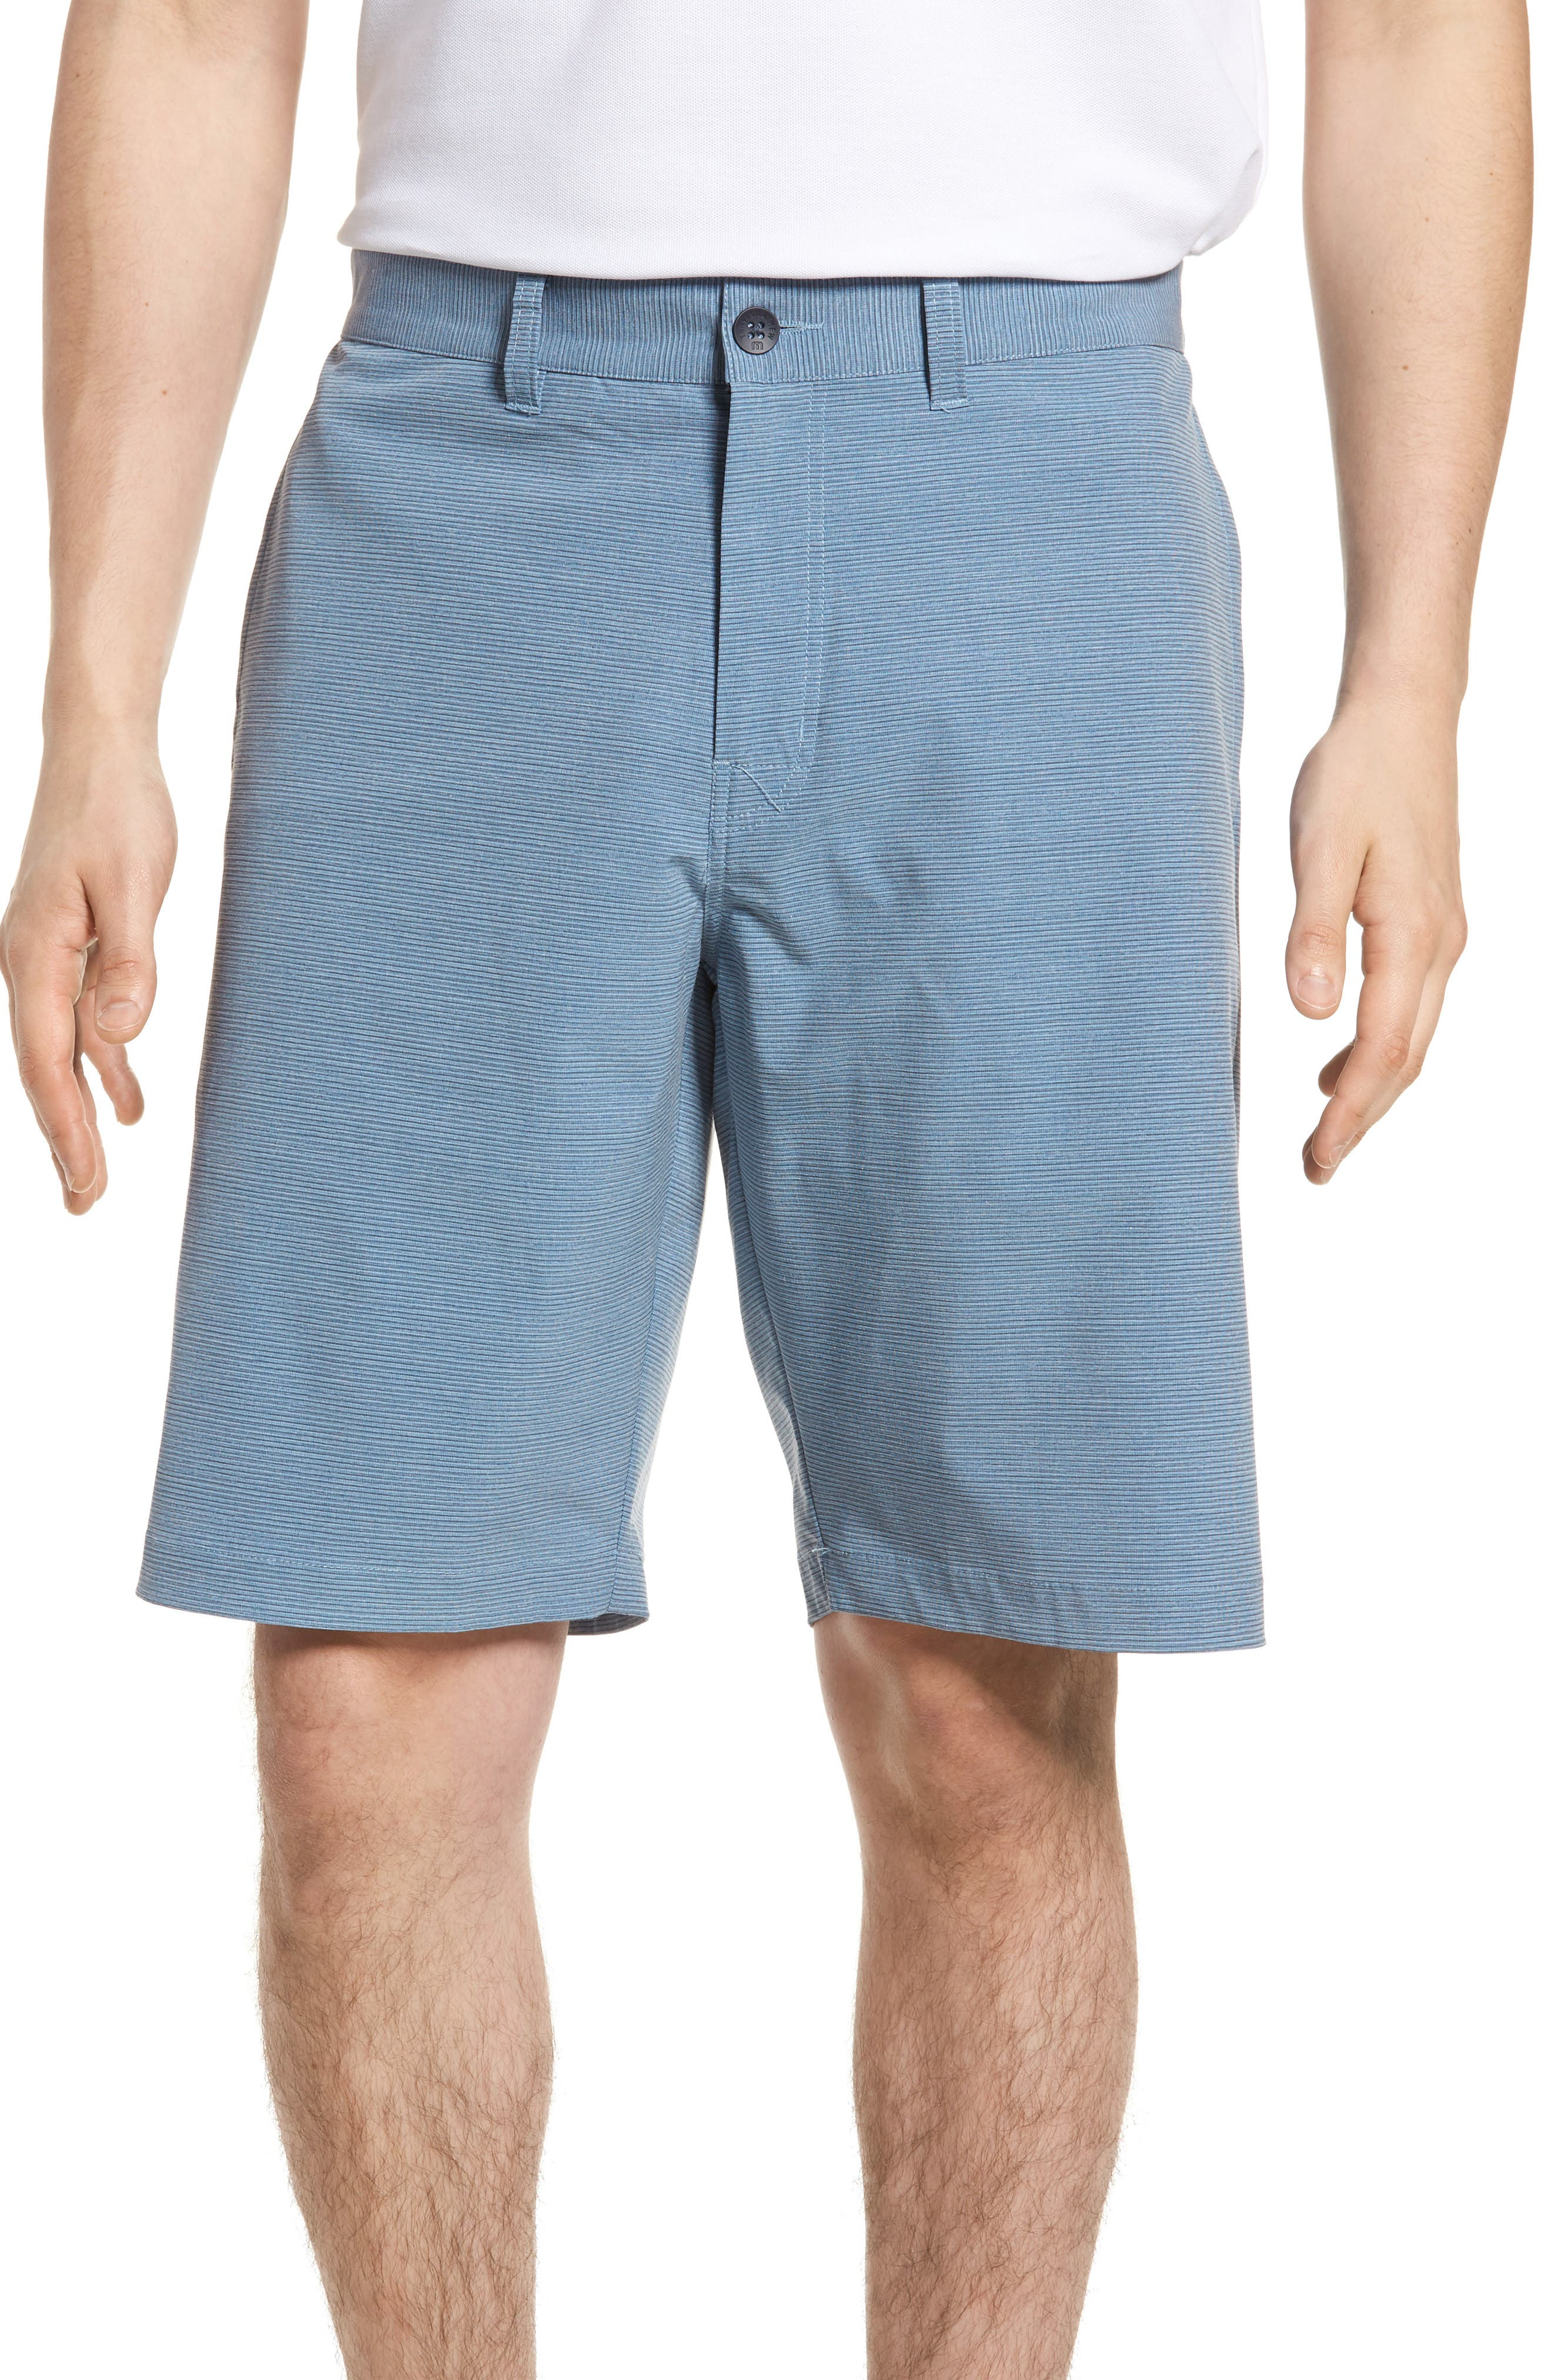 Toro Regular Fit Microstripe Shorts,                             Main thumbnail 1, color,                             French Blue/ Micro Chip